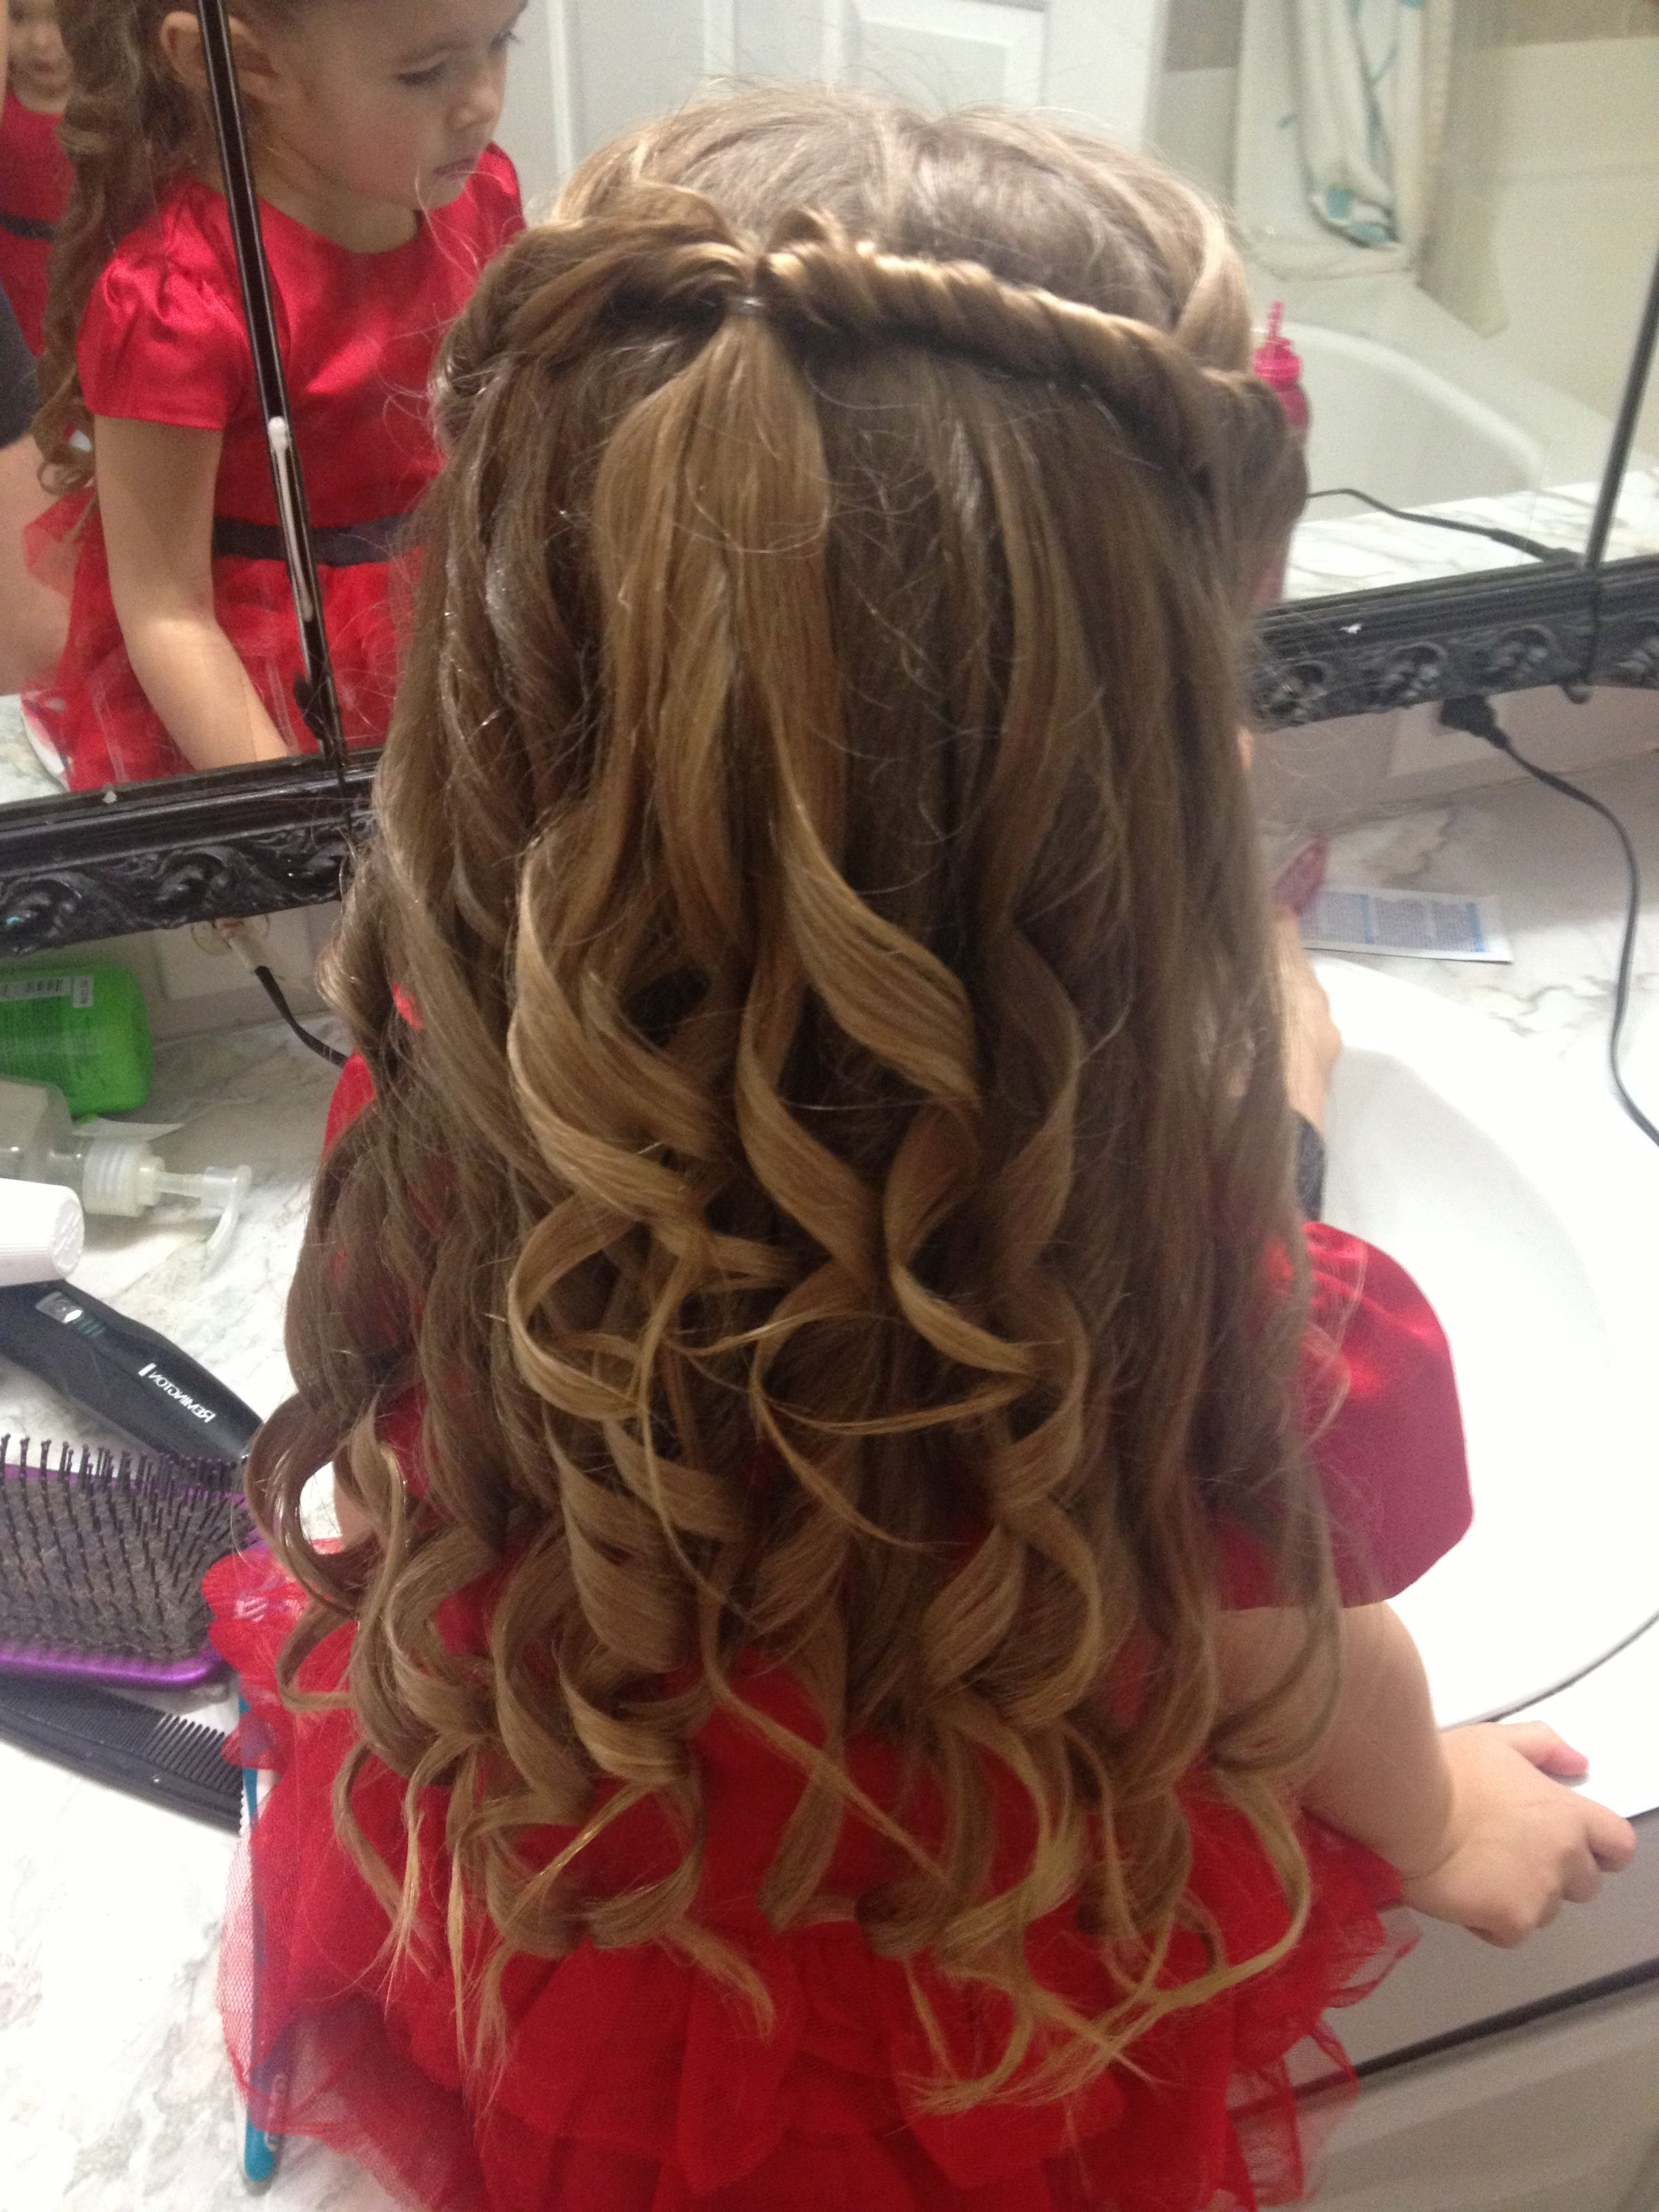 Cute Little Girls Hair Style For A Special Occasion (View 3 of 20)